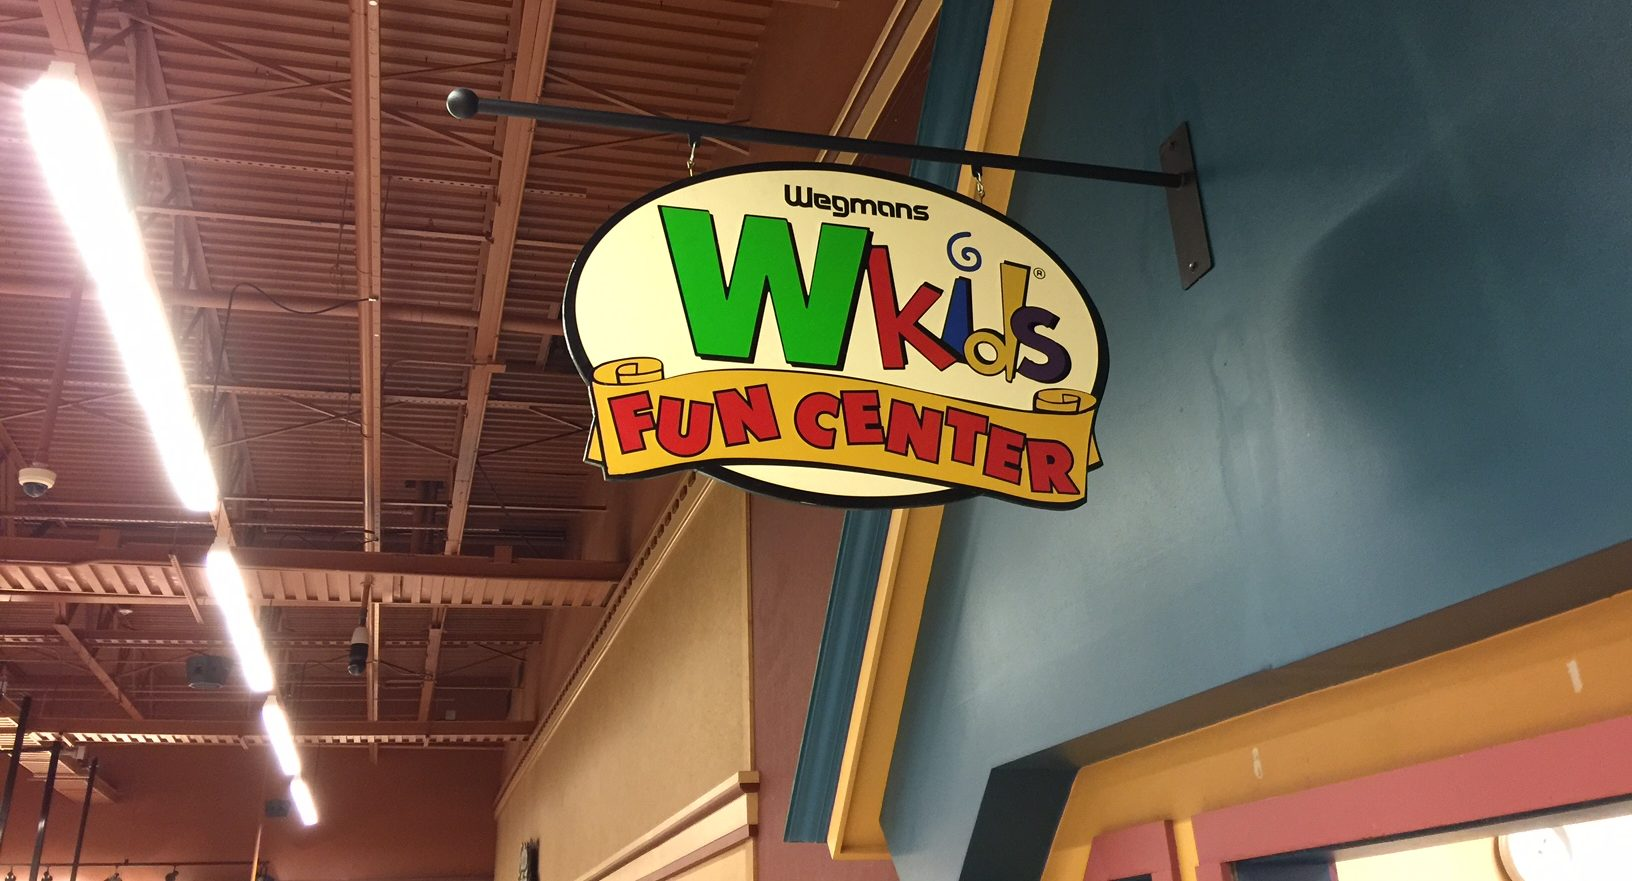 WKids is convenient for parents shopping at Wegmans. (Mary Friona-Celani/Special to The News)